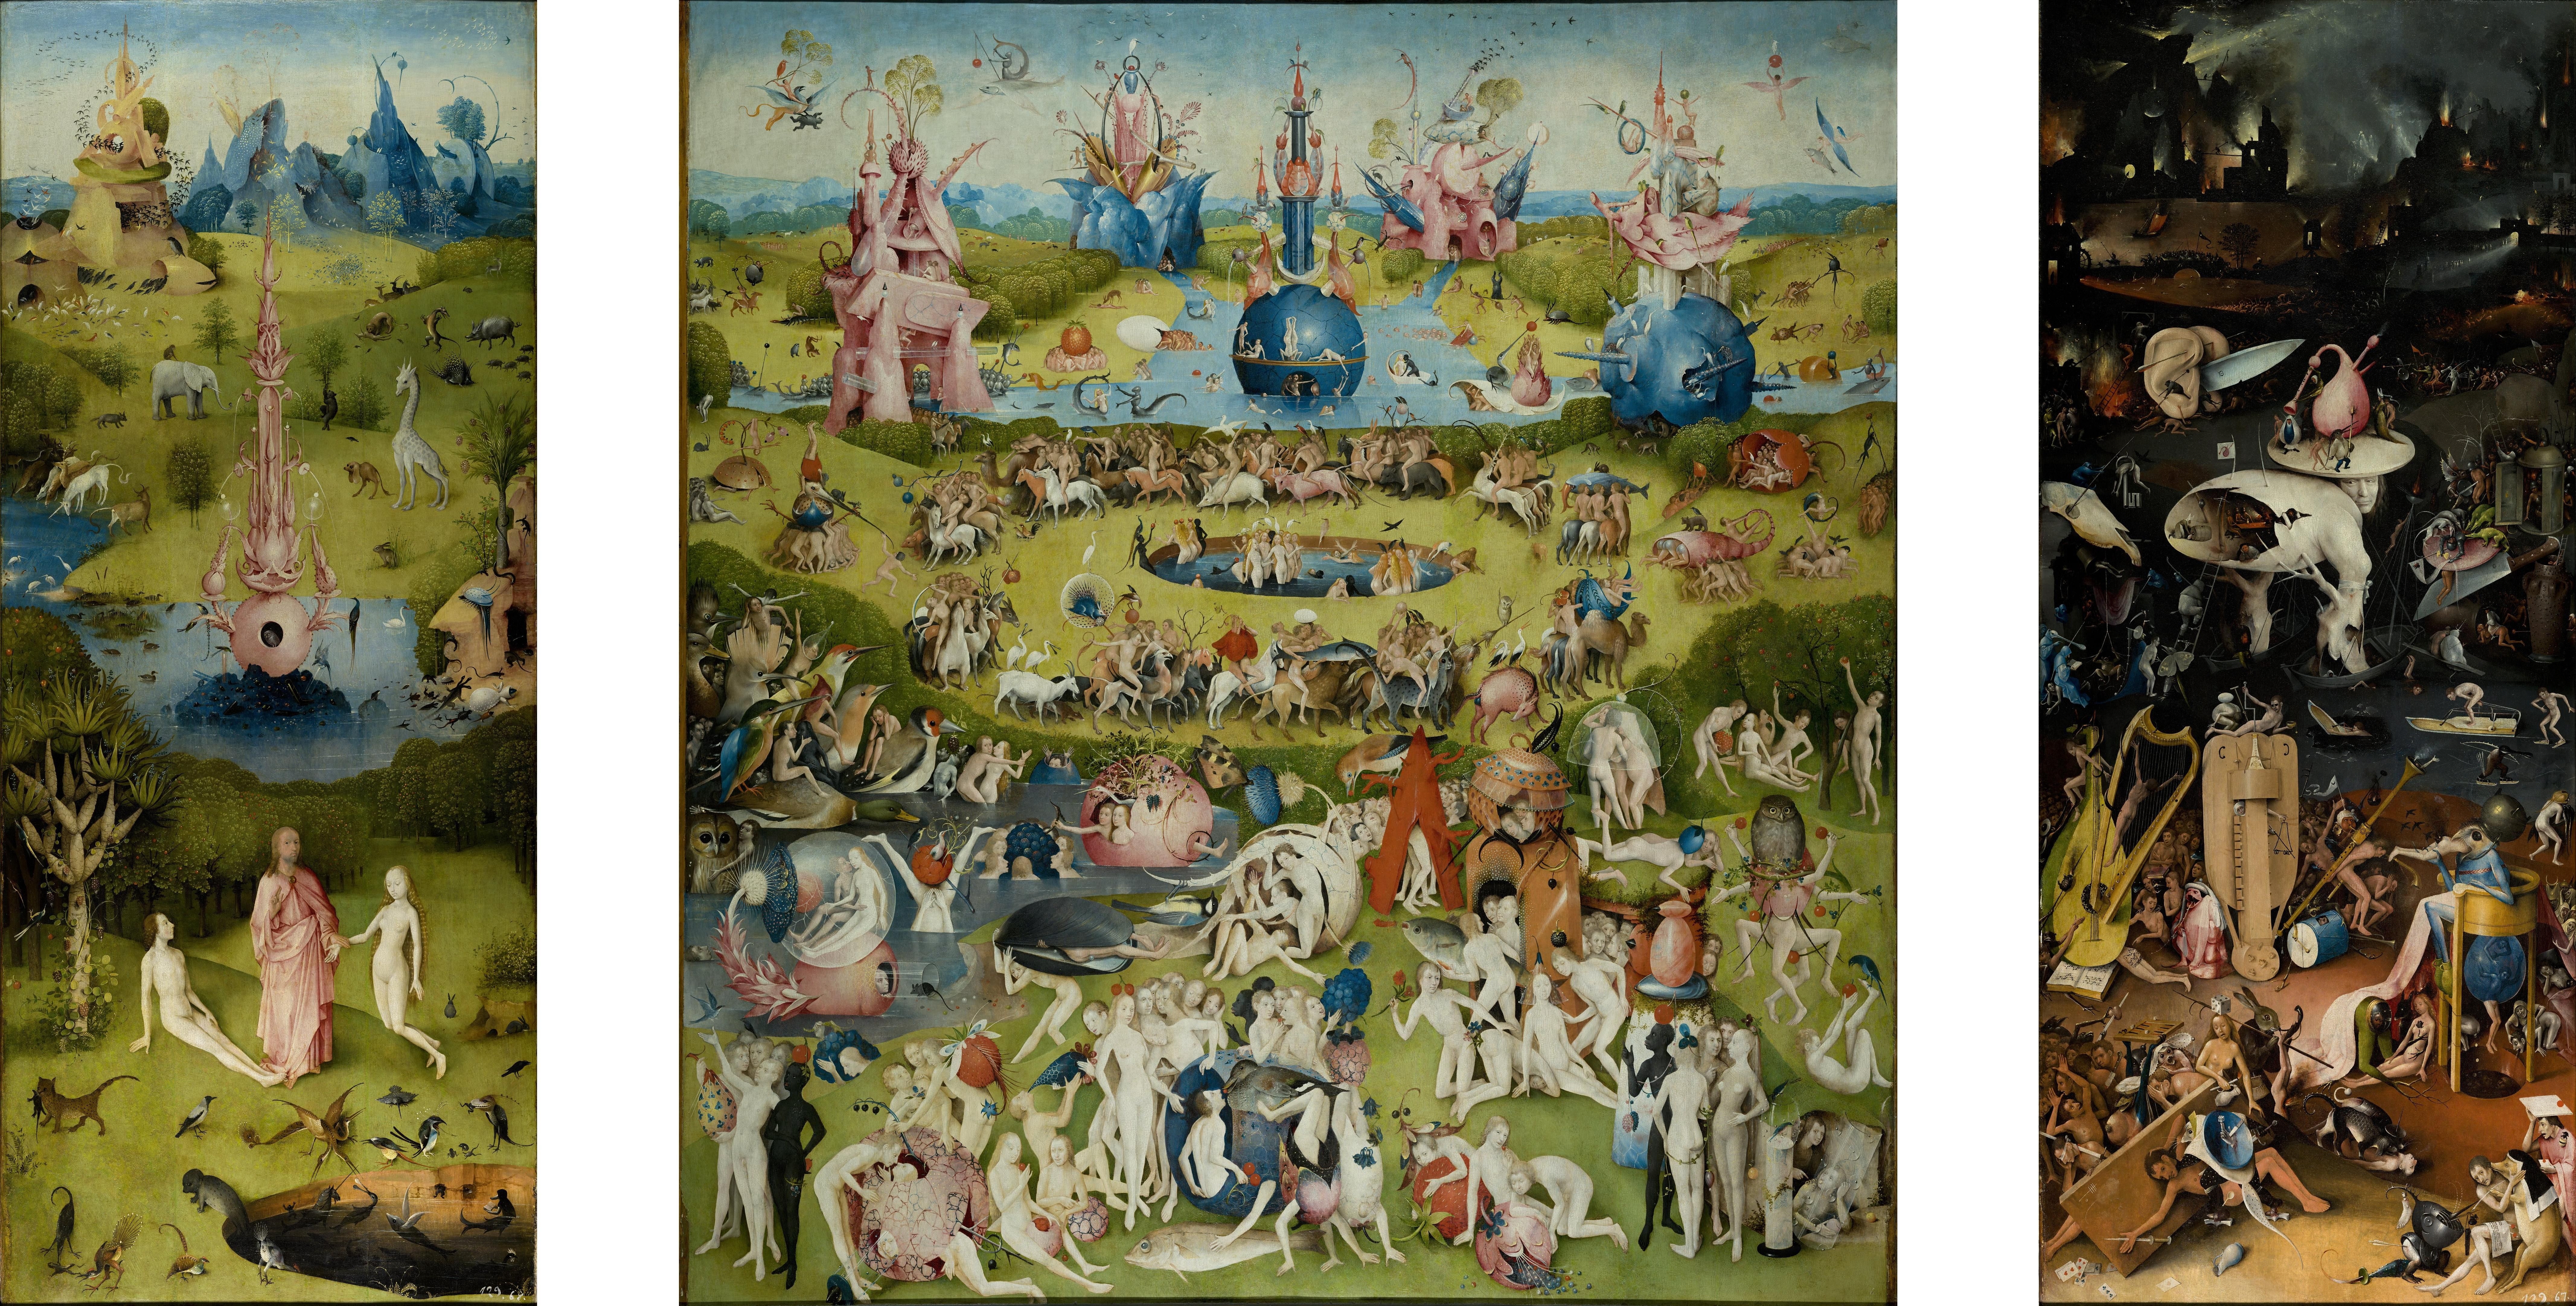 Hieronymus Bosch - The Garden of Earthly Delights [1510]